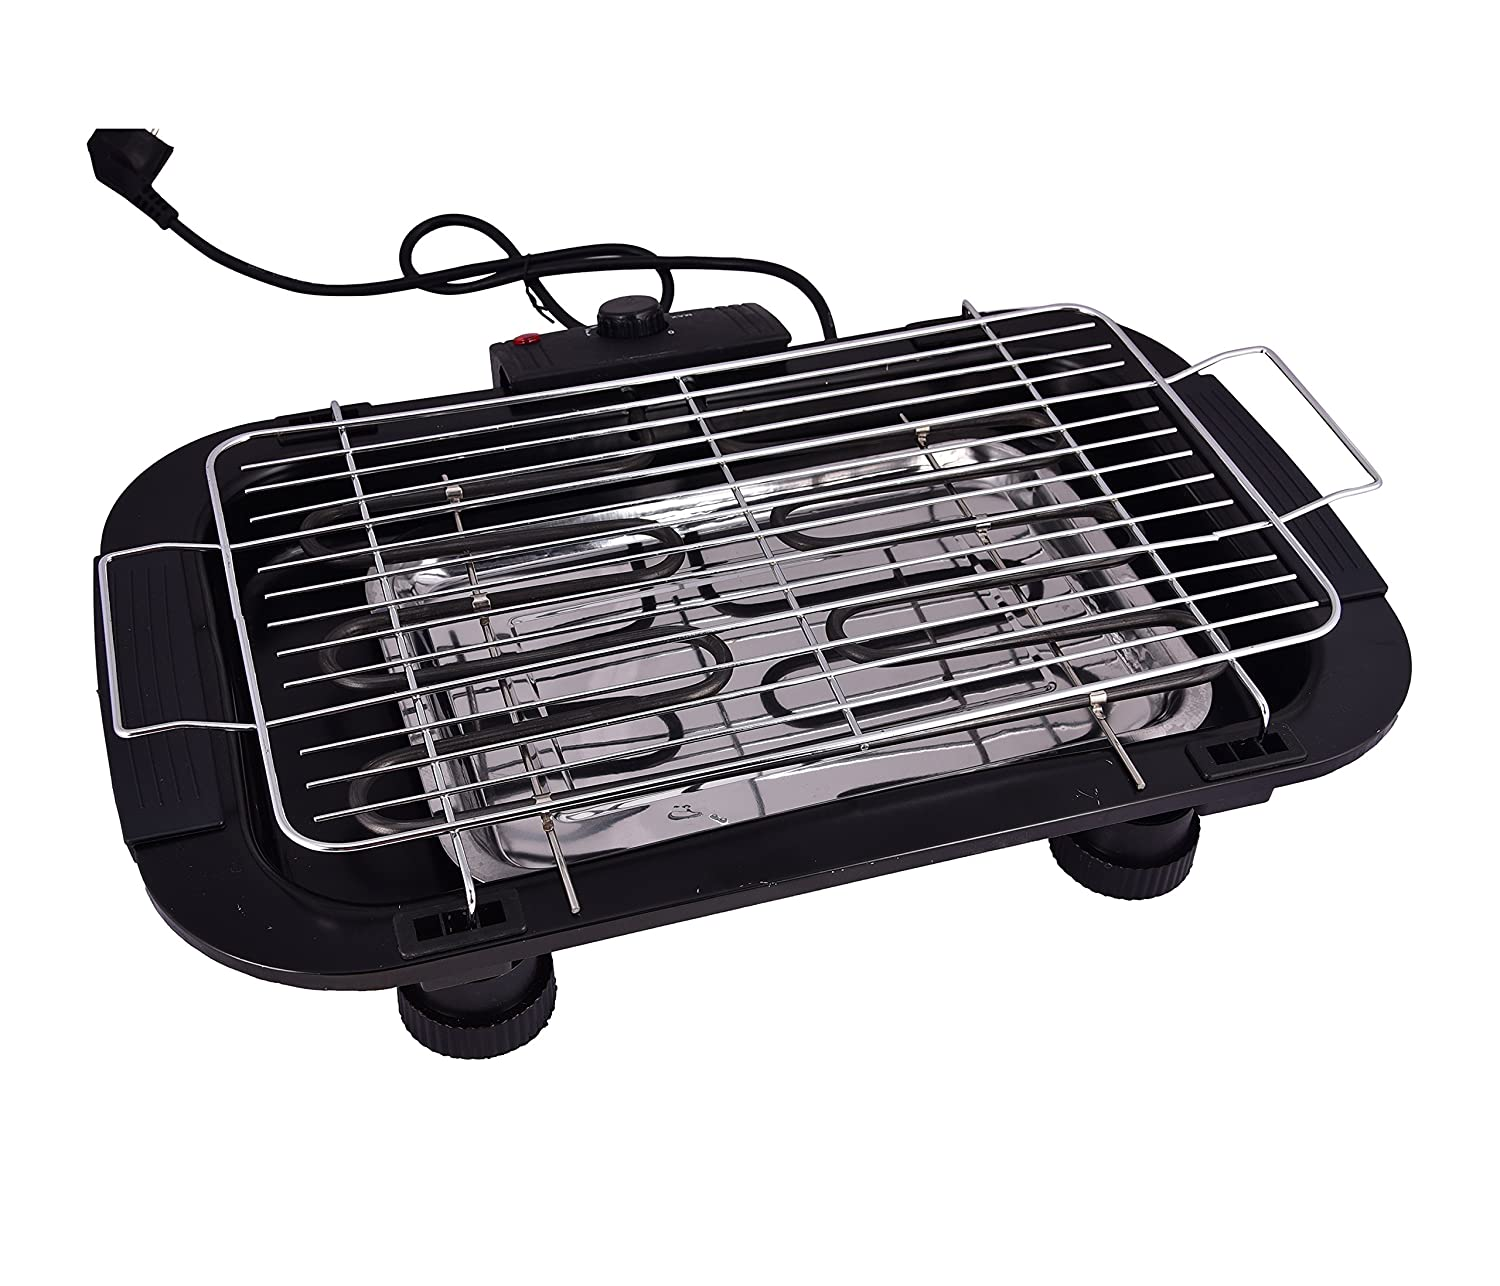 Buy Electric Barbeque Grill Tandoor For Outdoor Indoor Cooking Black Online At Low Prices In India Amazon In